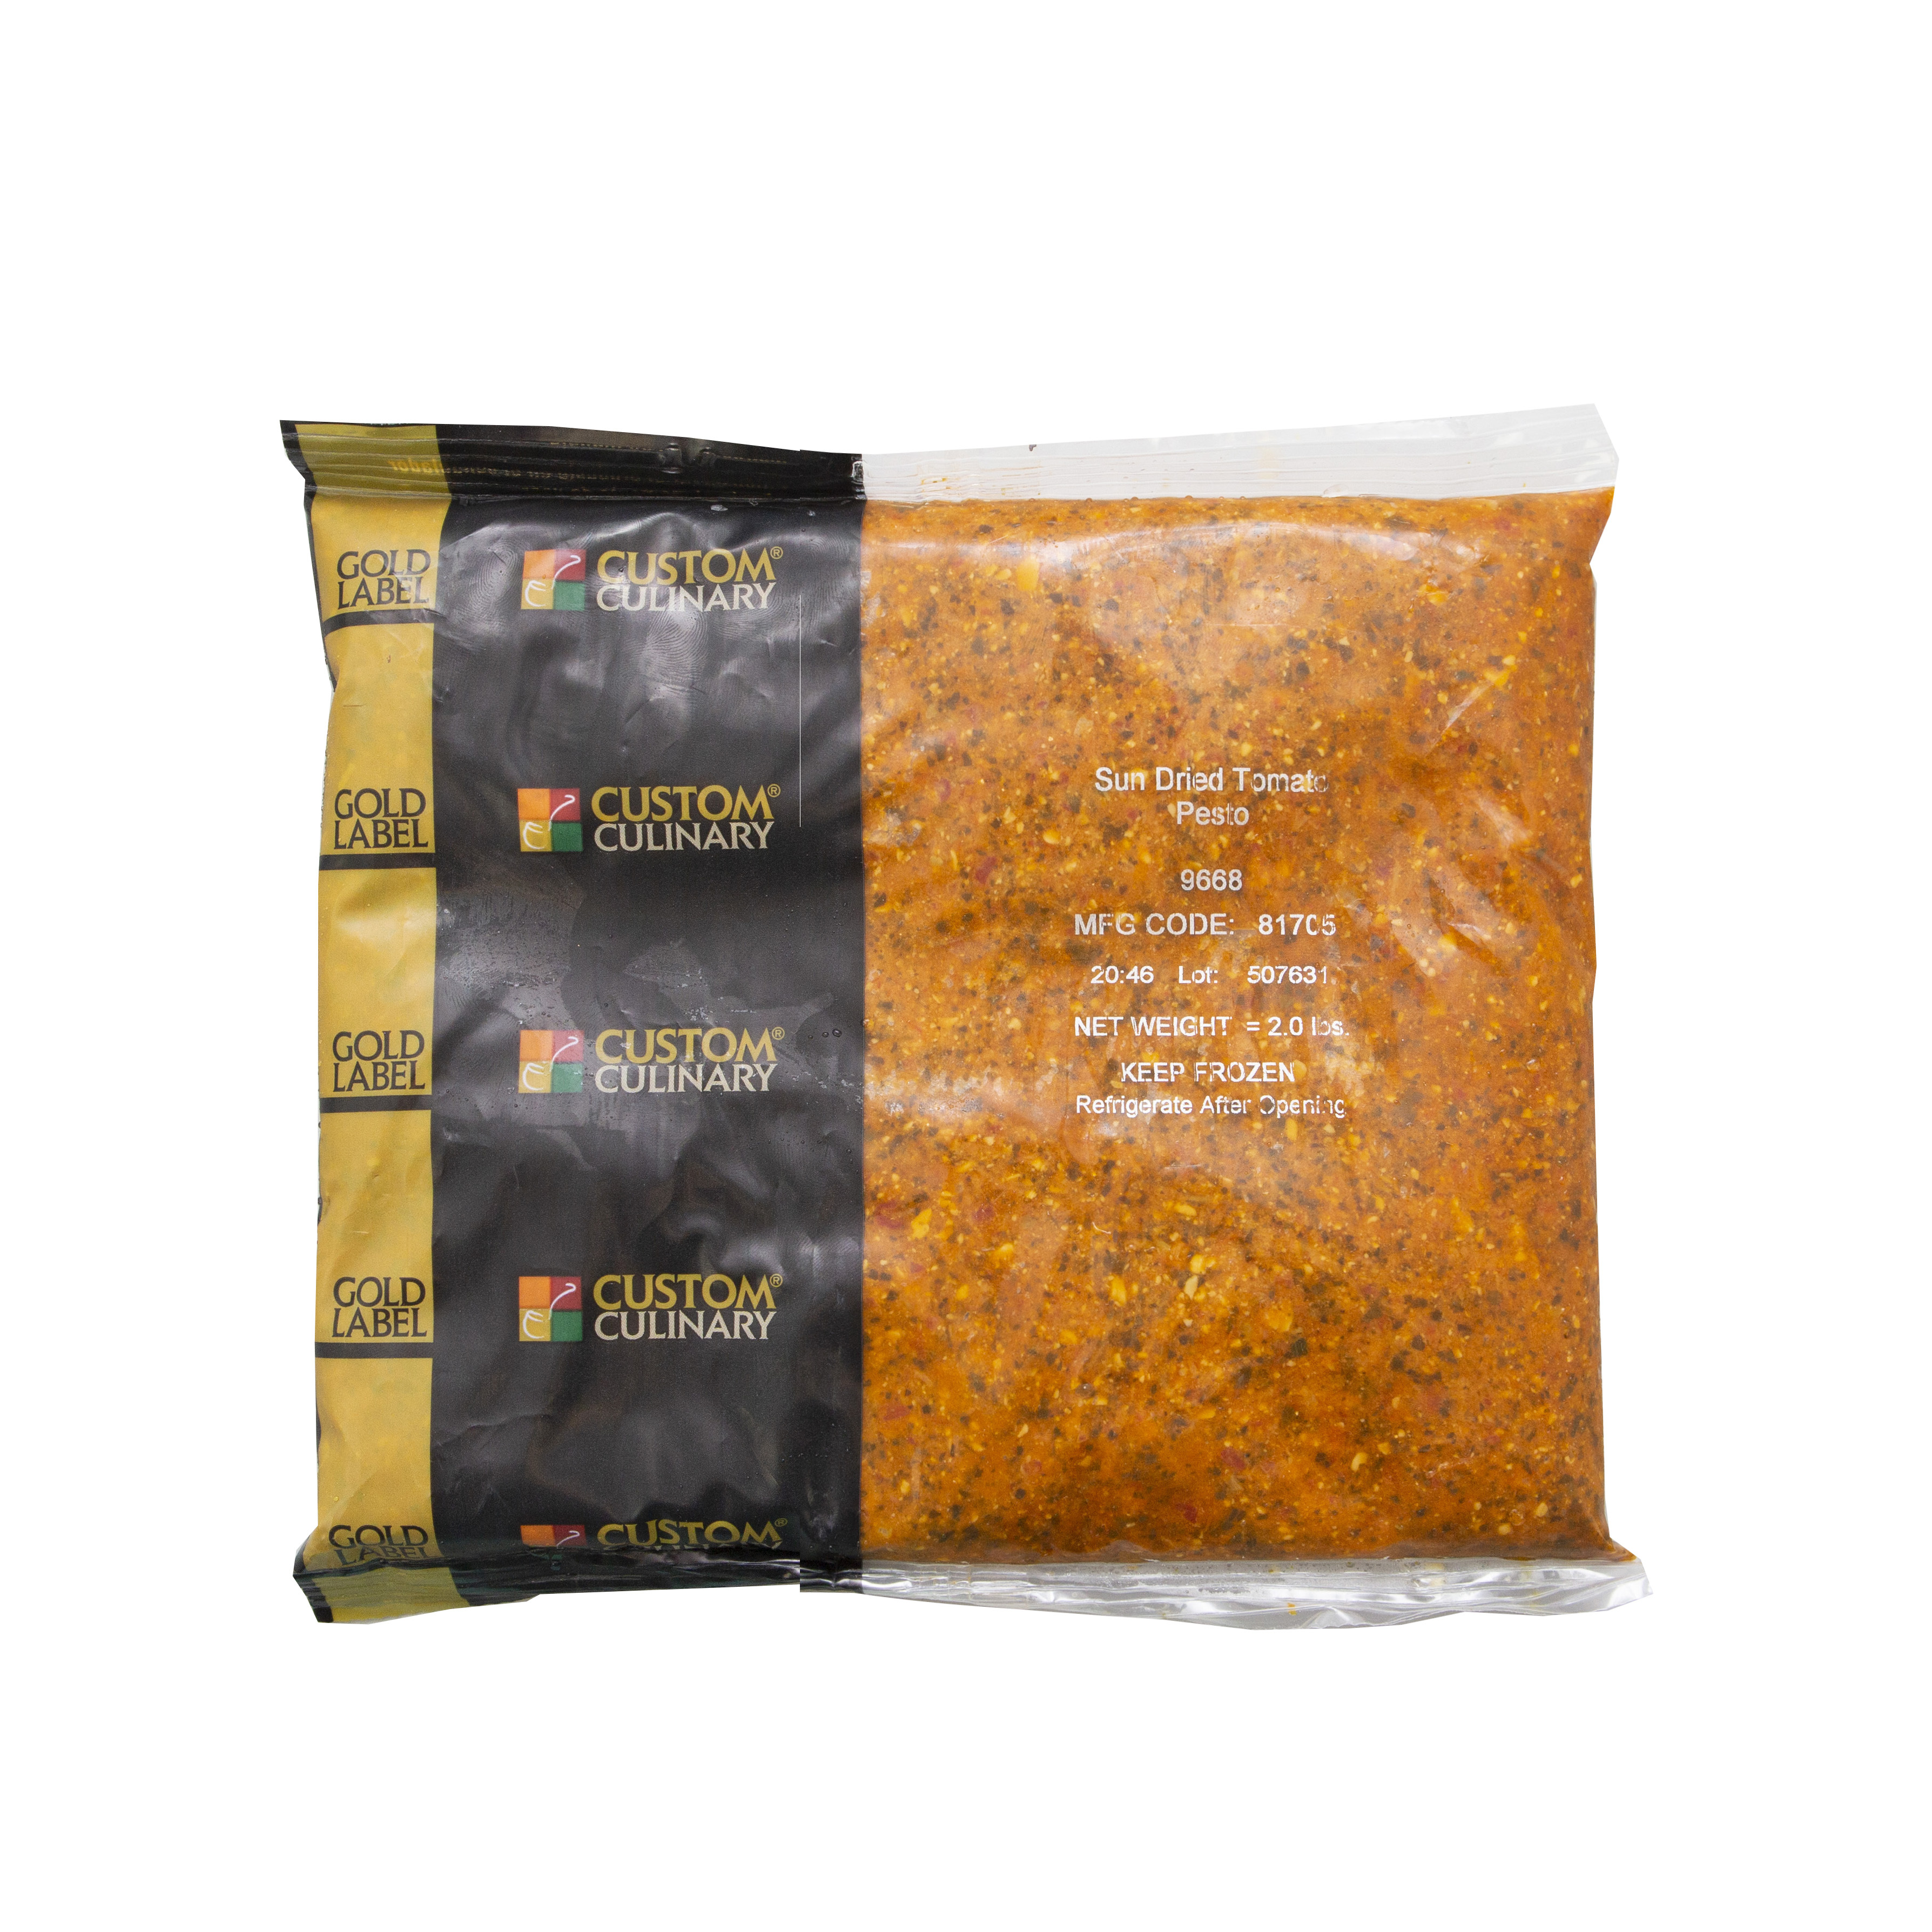 9668 - GOLD LABEL Ready-To-Use Frozen Sundried Tomato Pesto Sauce